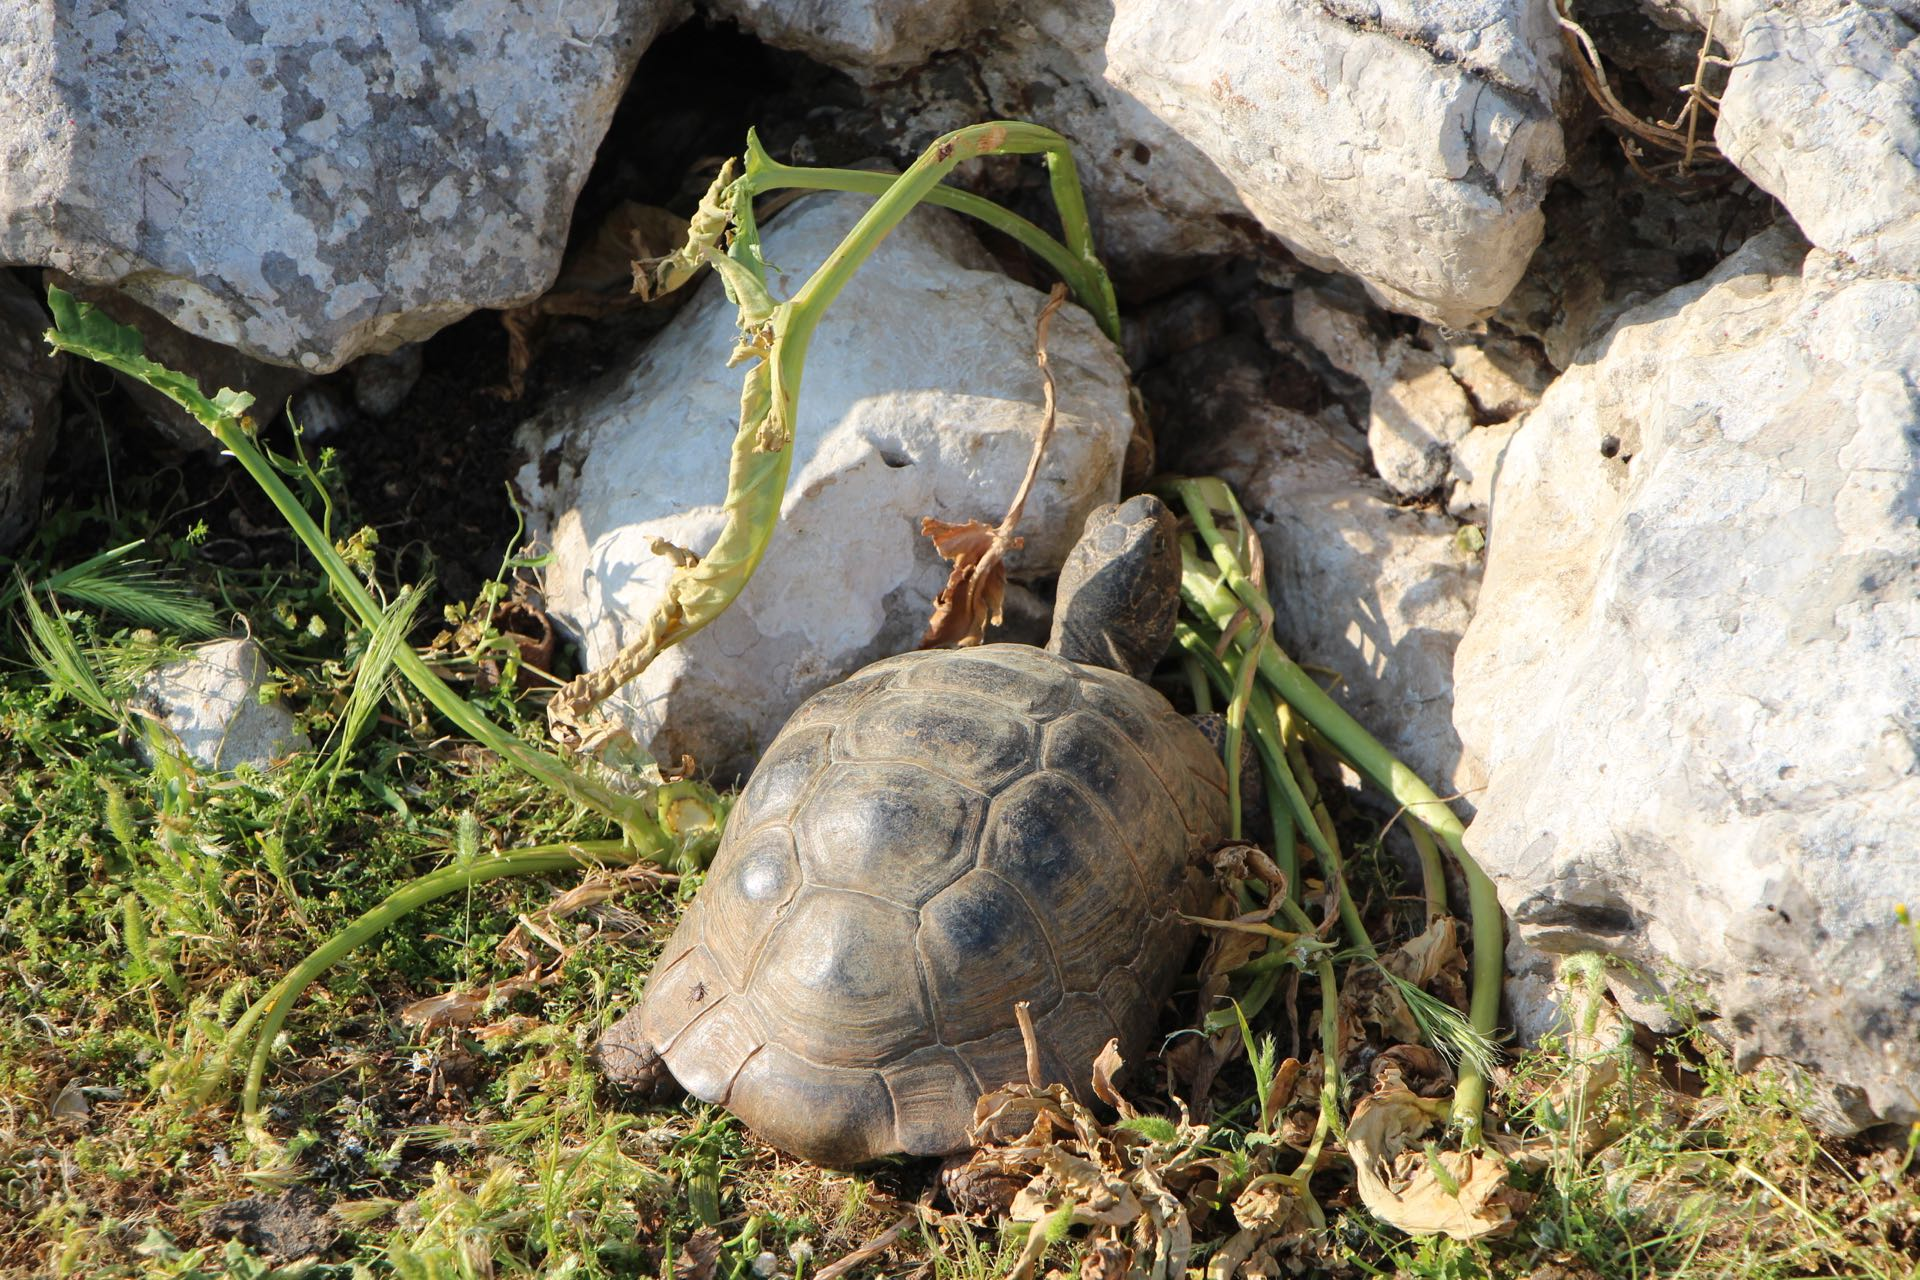 A tortoise on Mount Psoriaris on the island of Kos in Greece